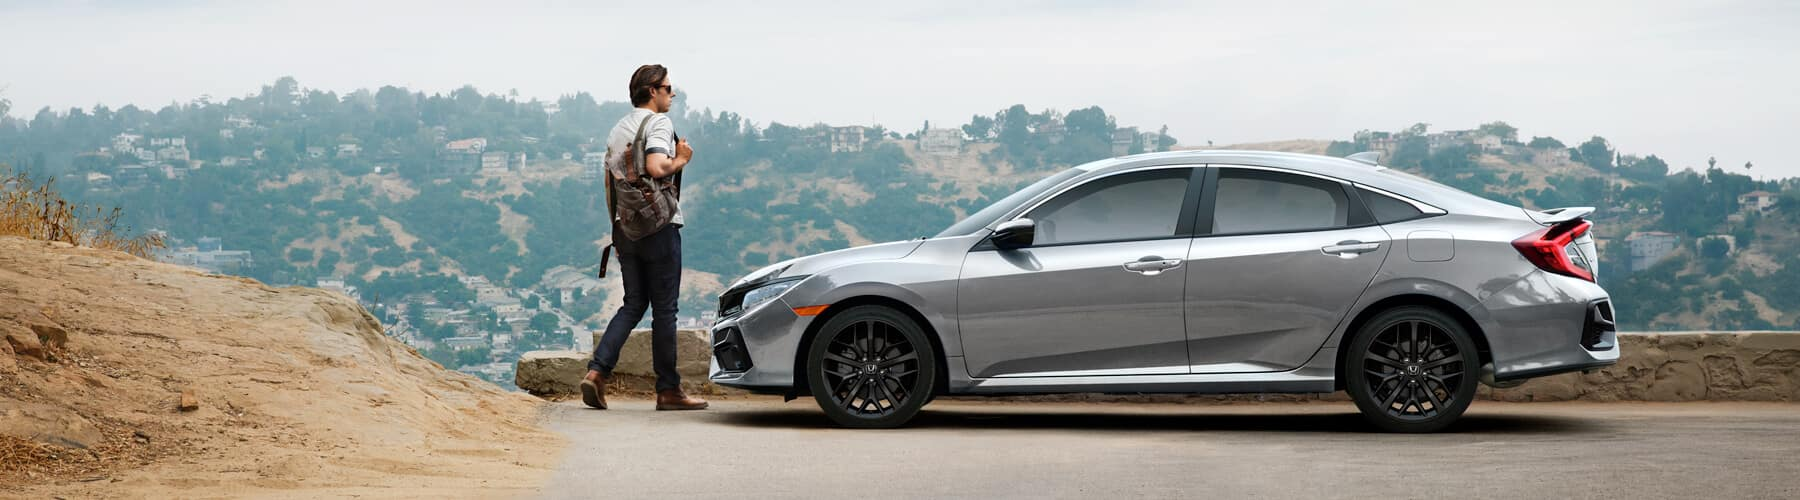 2020 Honda Civic Si Sedan Slider